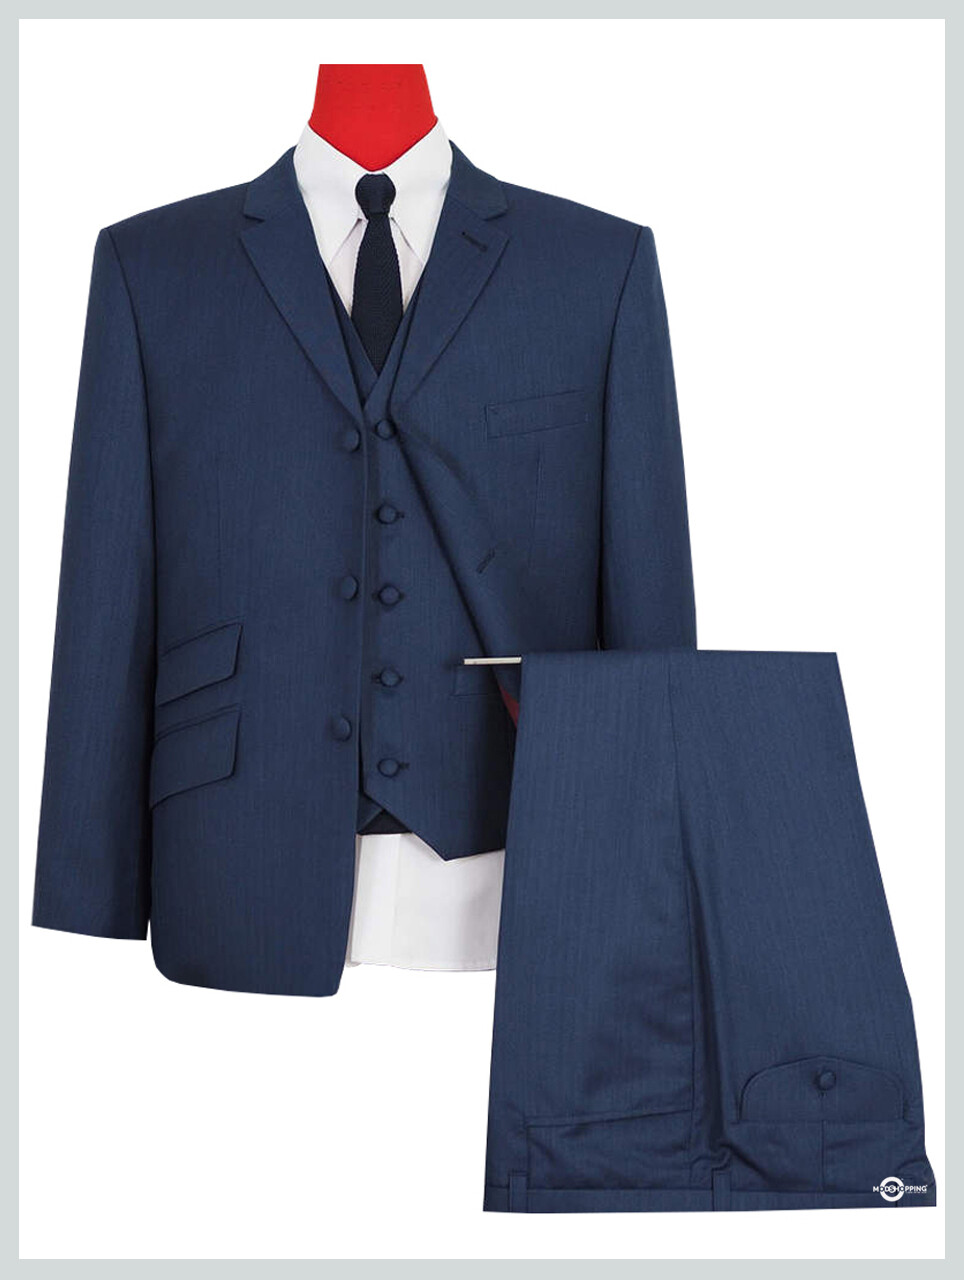 3 Piece Suit | Classic Midnight Blue Herringbone Suit